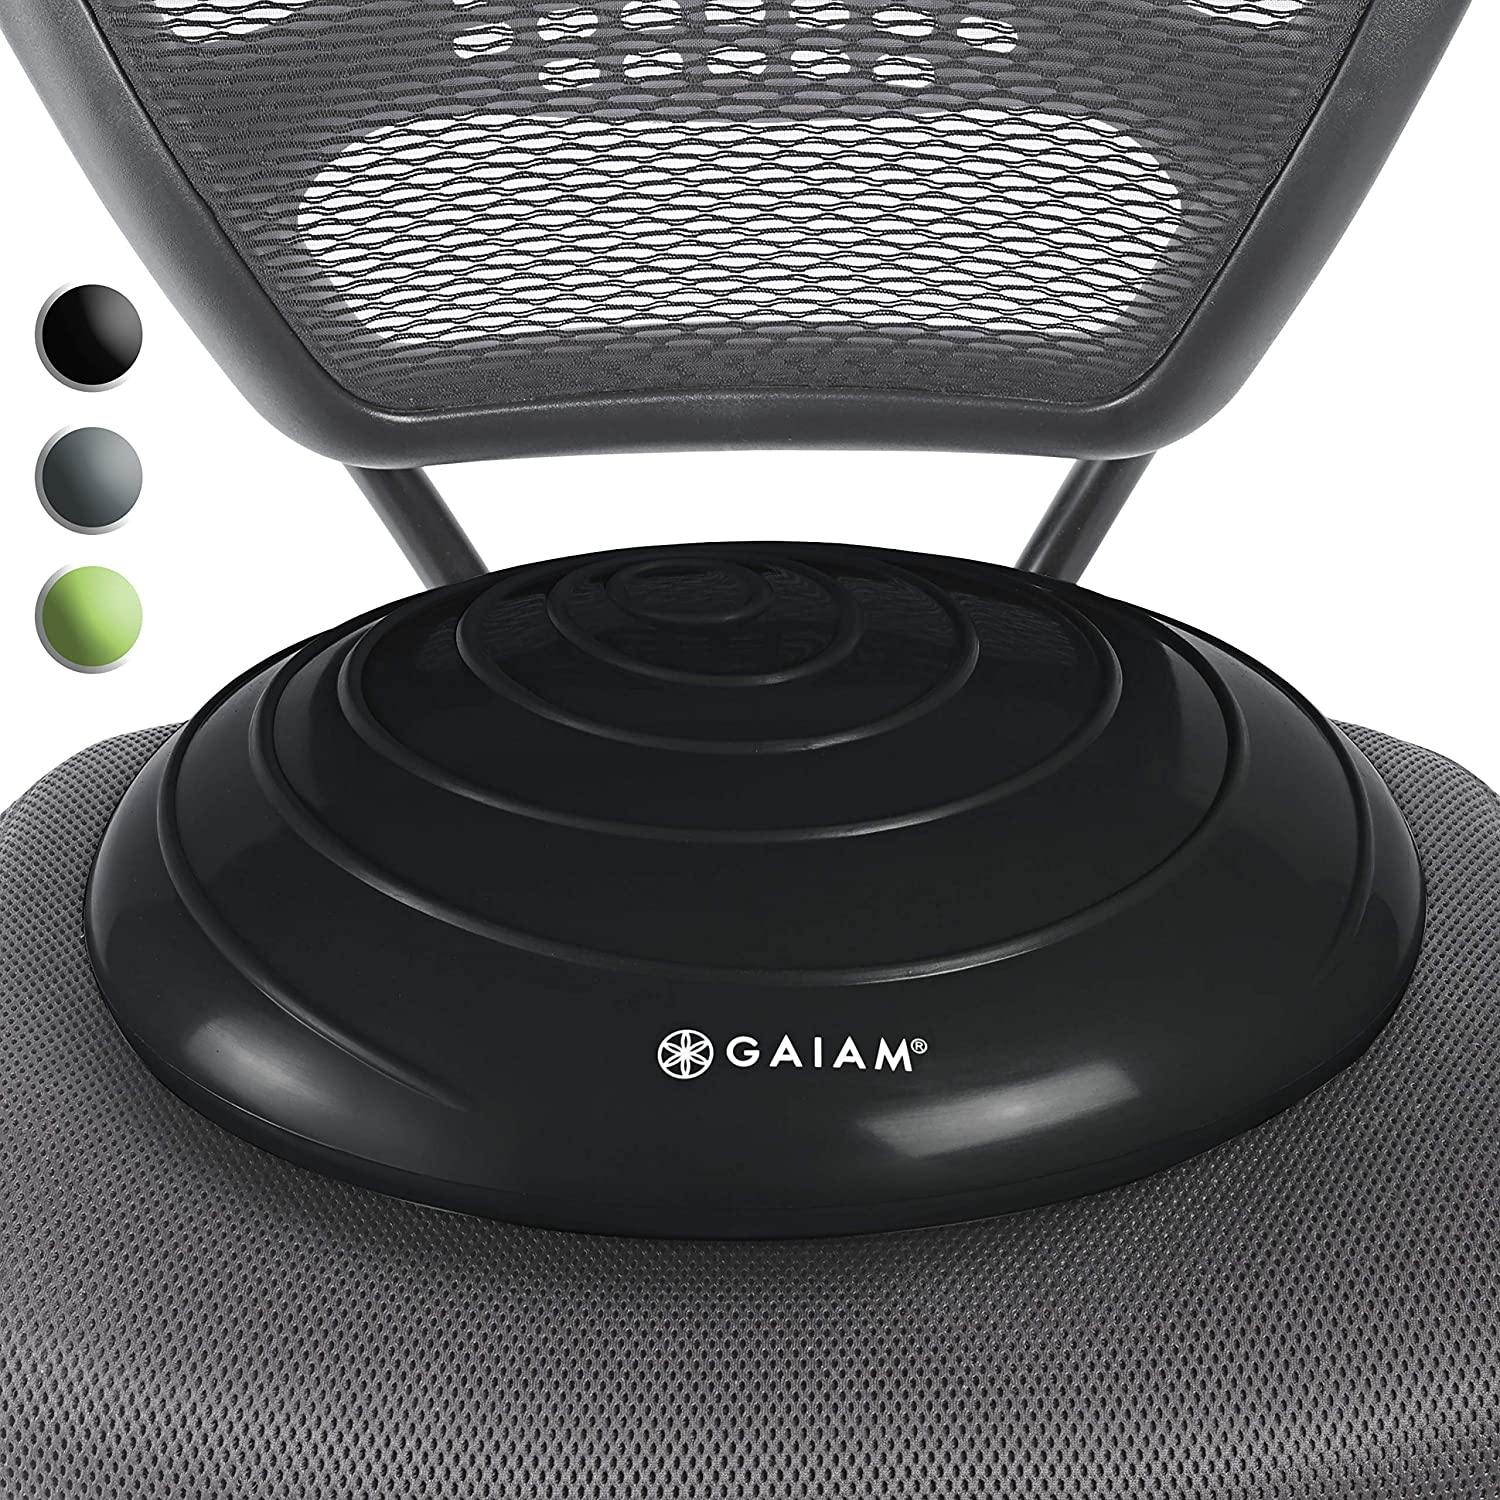 Gaiam Balance Disc Wobble Cushion Stability Core Trainer for Home or Office Desk Chair Kids Alternative Classroom Sensory Wiggle Seat Renewed